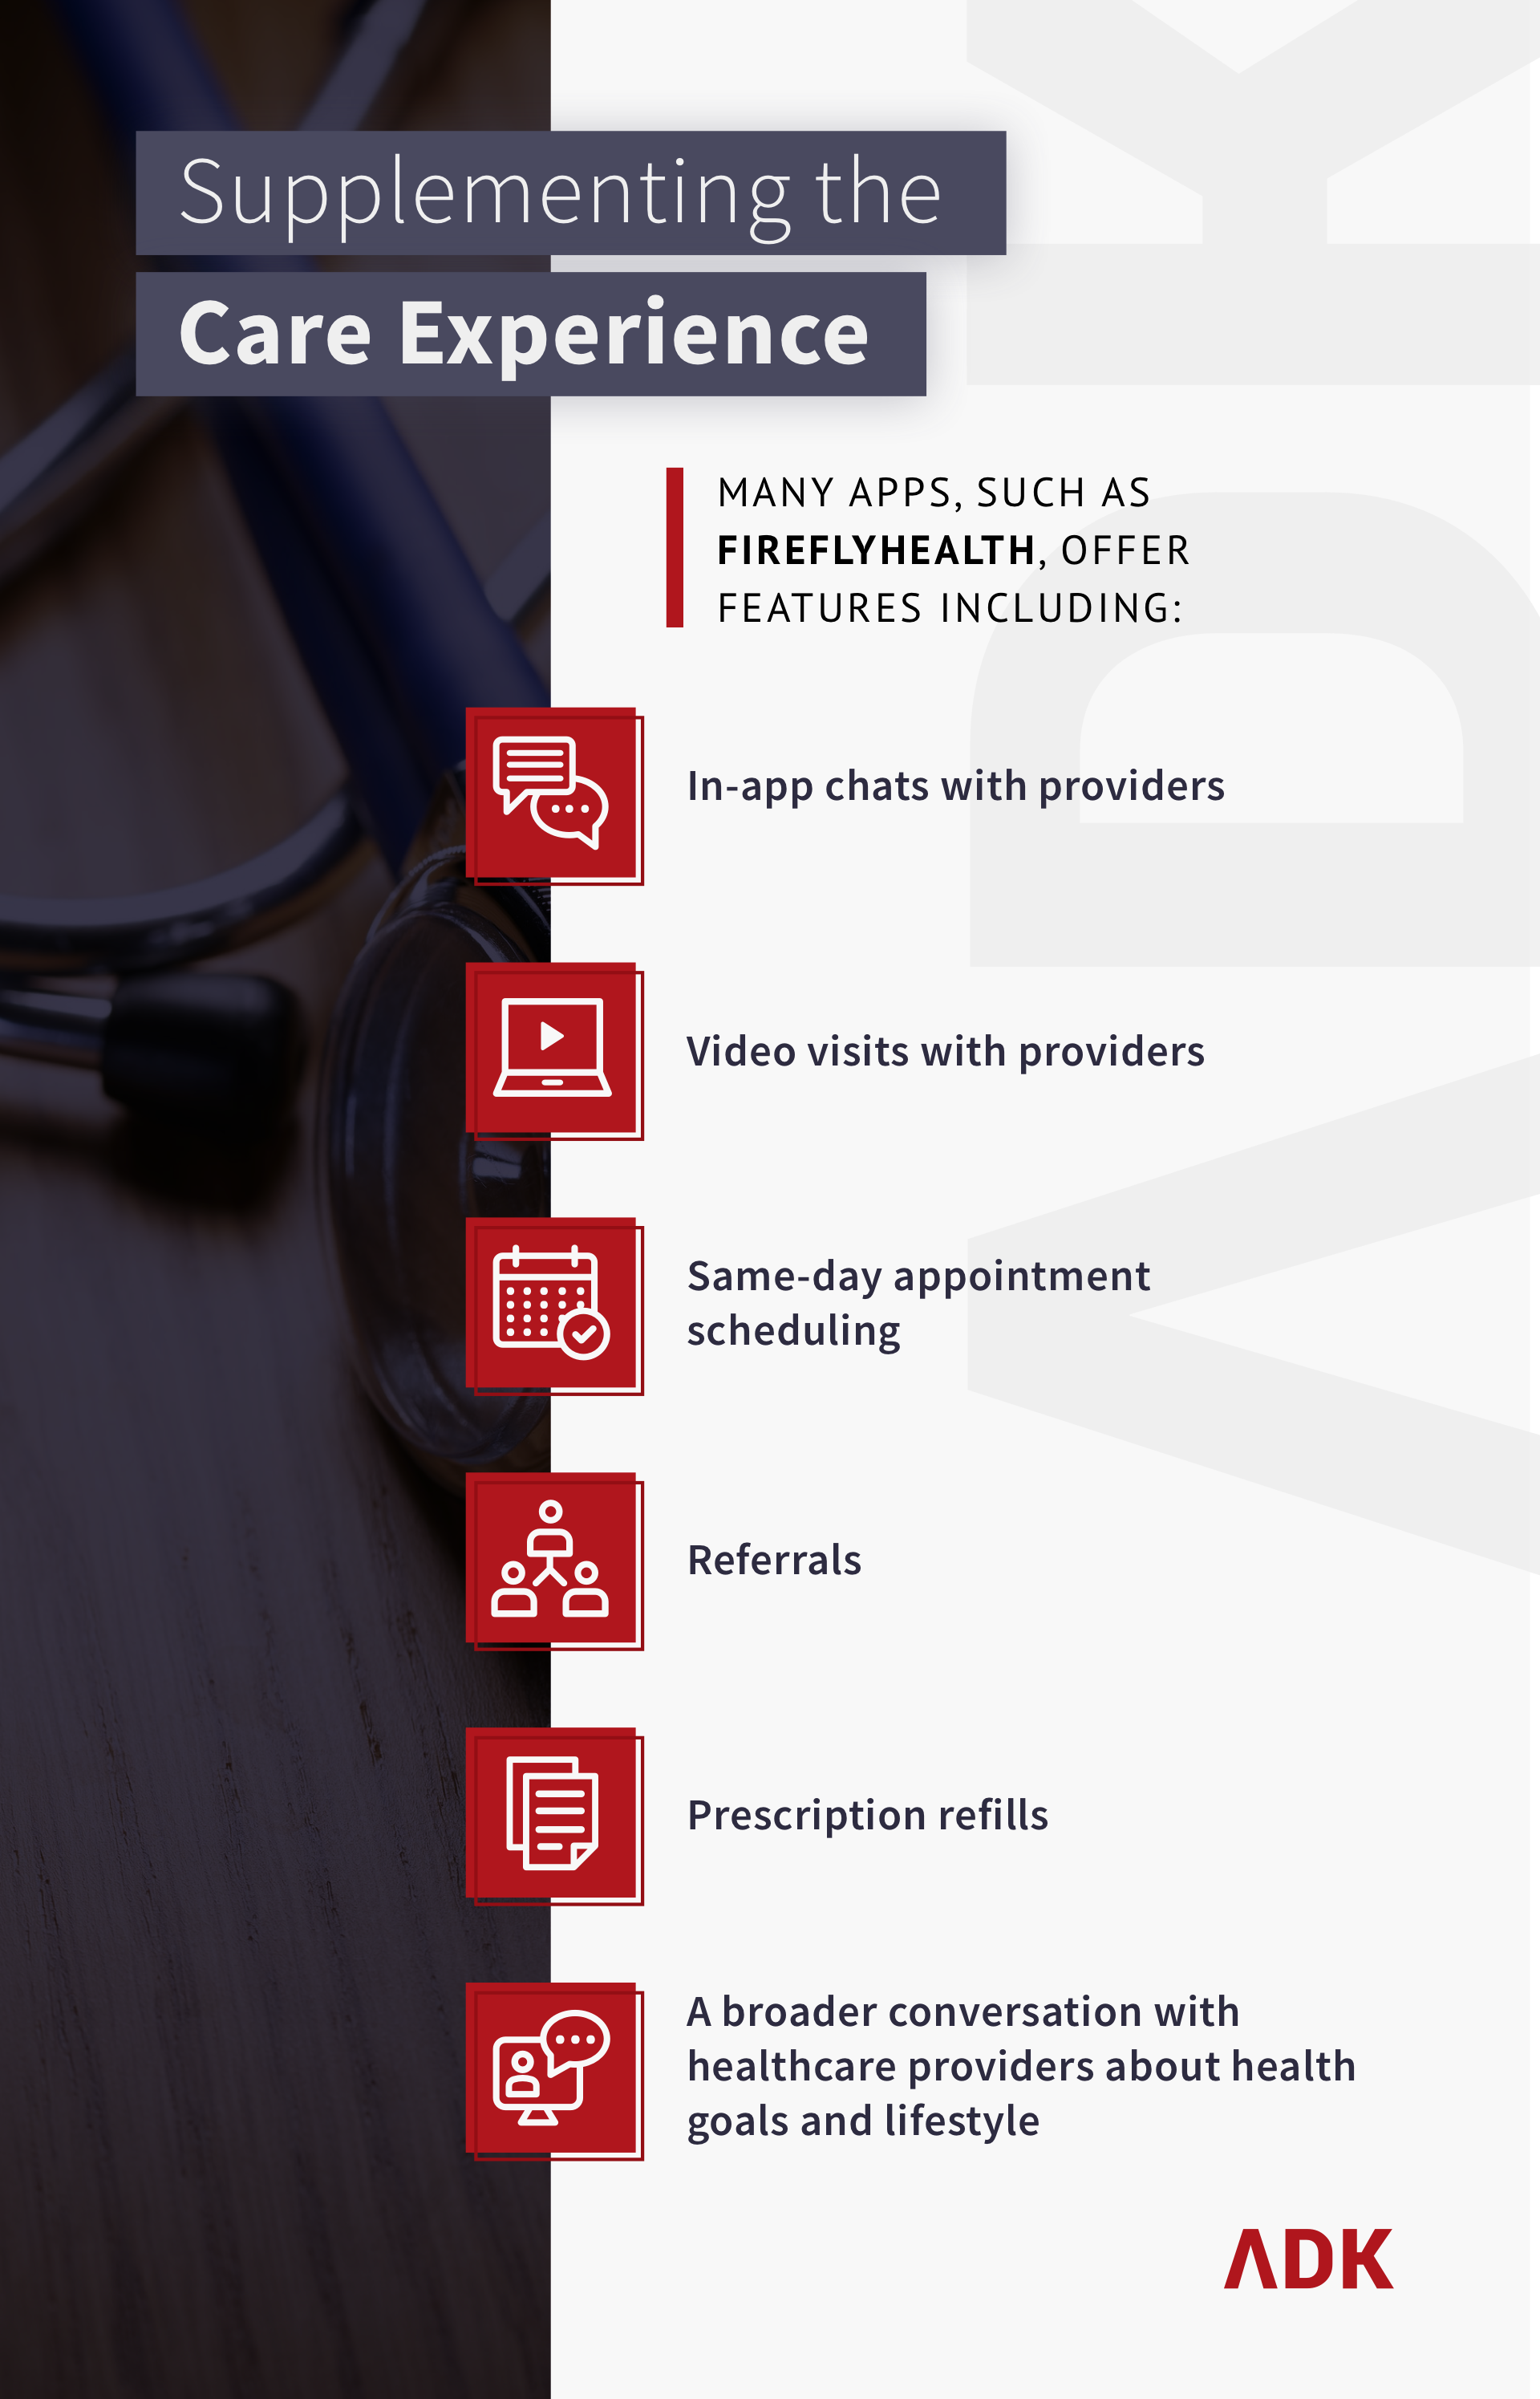 infographic about Supplementing the Care Experience. It says: Many apps, such as fireflyhealth, offer features including in-app chats with providers, video visits with providers, same-day appointment scheduling, referrals, prescription refills, and a broader conversation with healthcare providers about health goals and lifestyle.